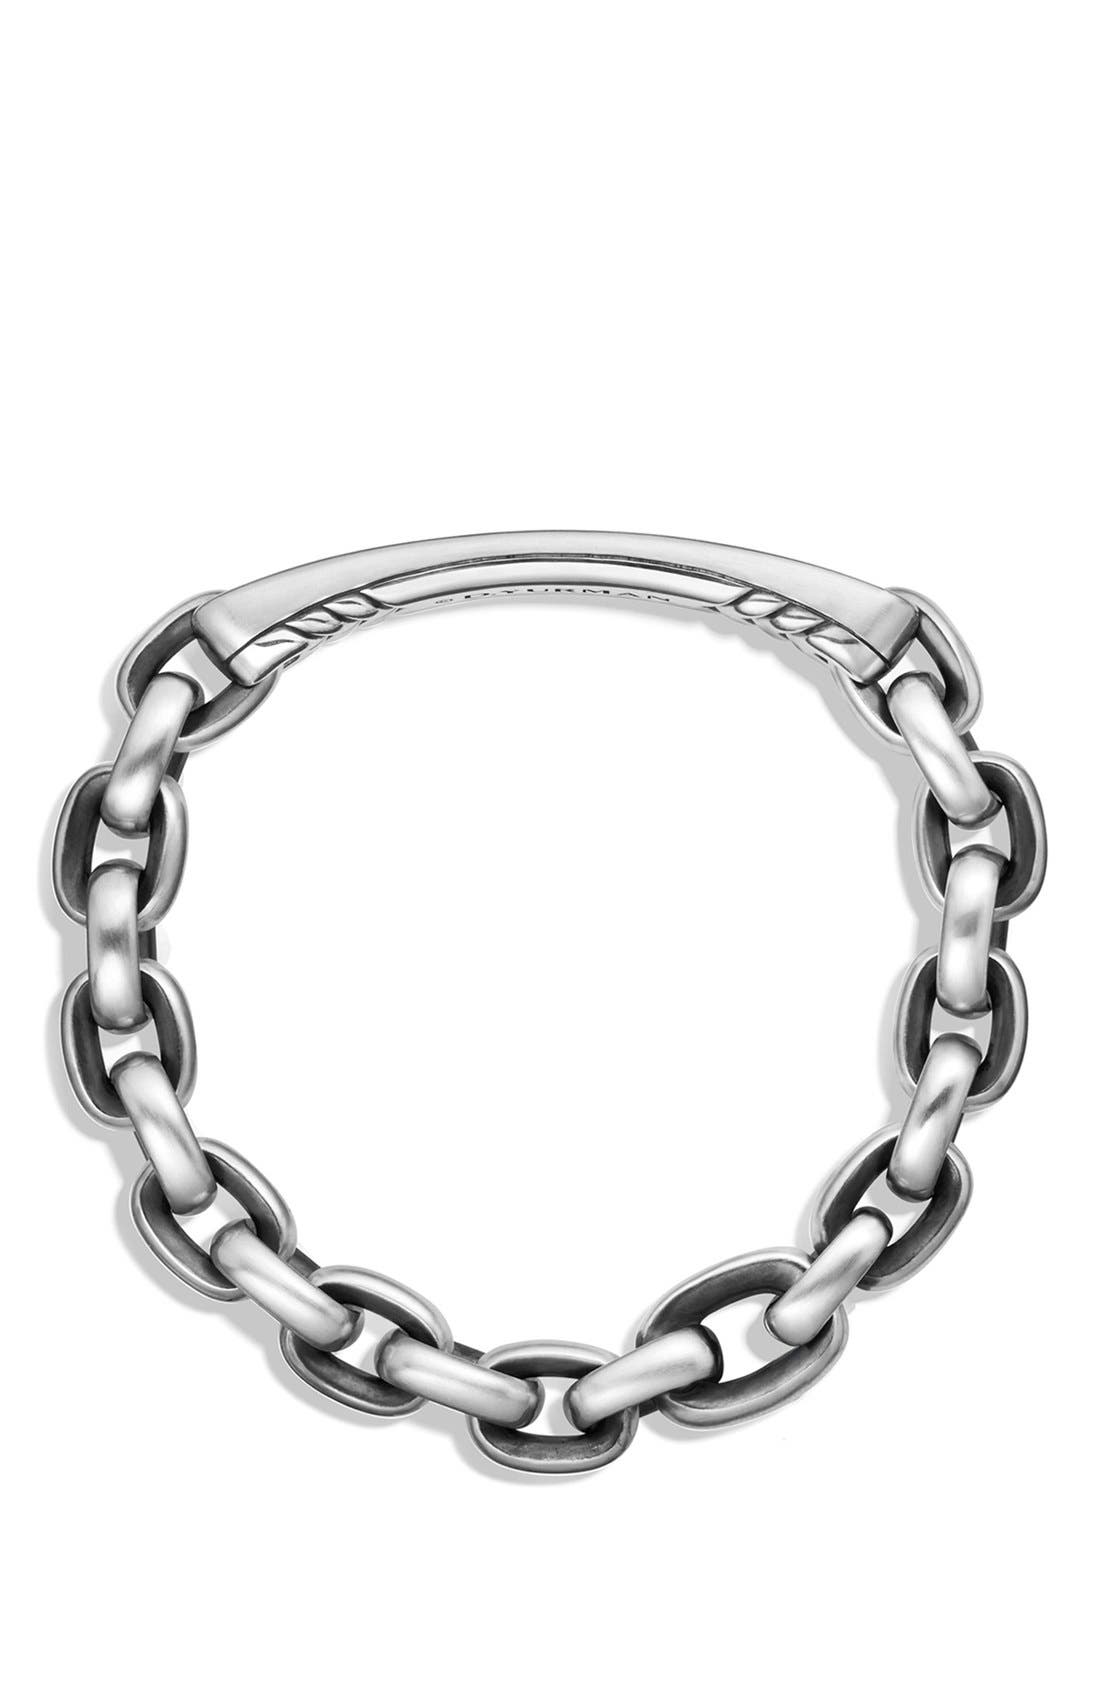 'Streamline' ID Bracelet,                             Alternate thumbnail 2, color,                             Silver